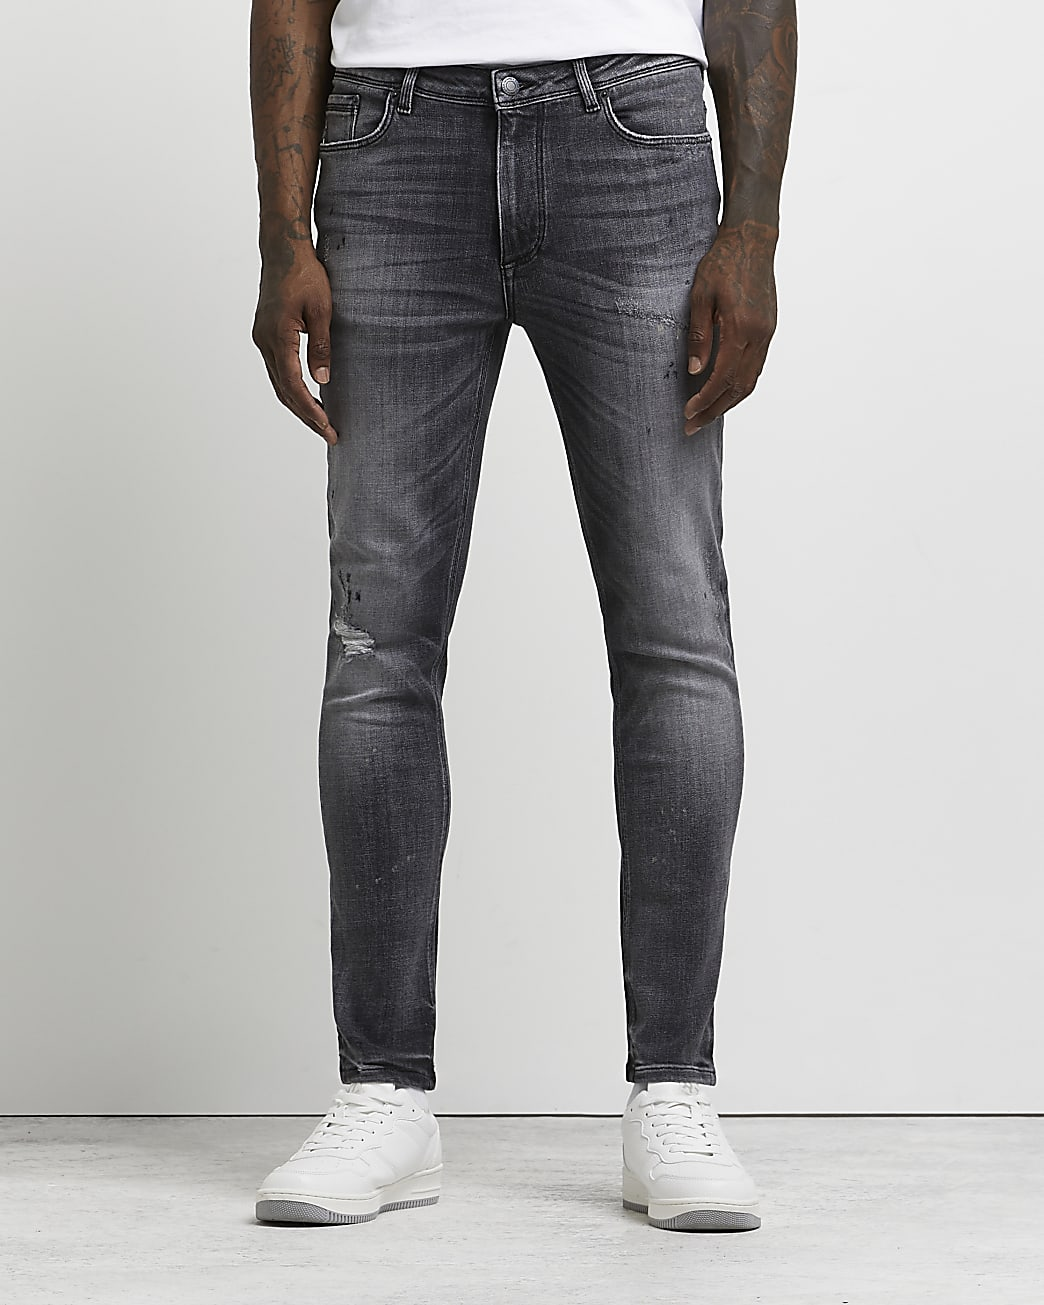 Grey skinny fit ripped jeans